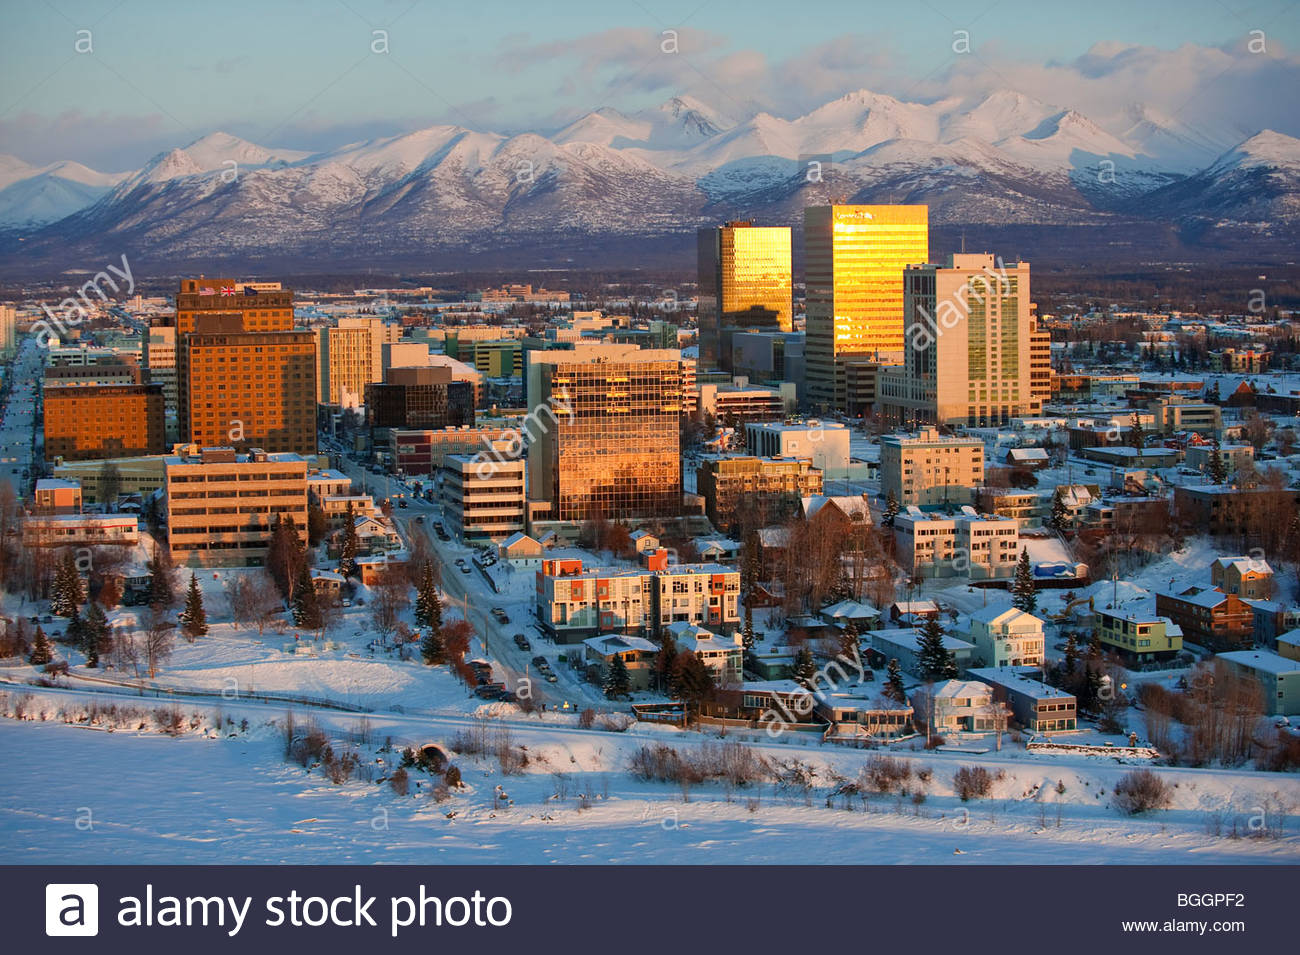 Alaska, Anchorage city on the shores of Cook Inlet in winter. - Stock Image